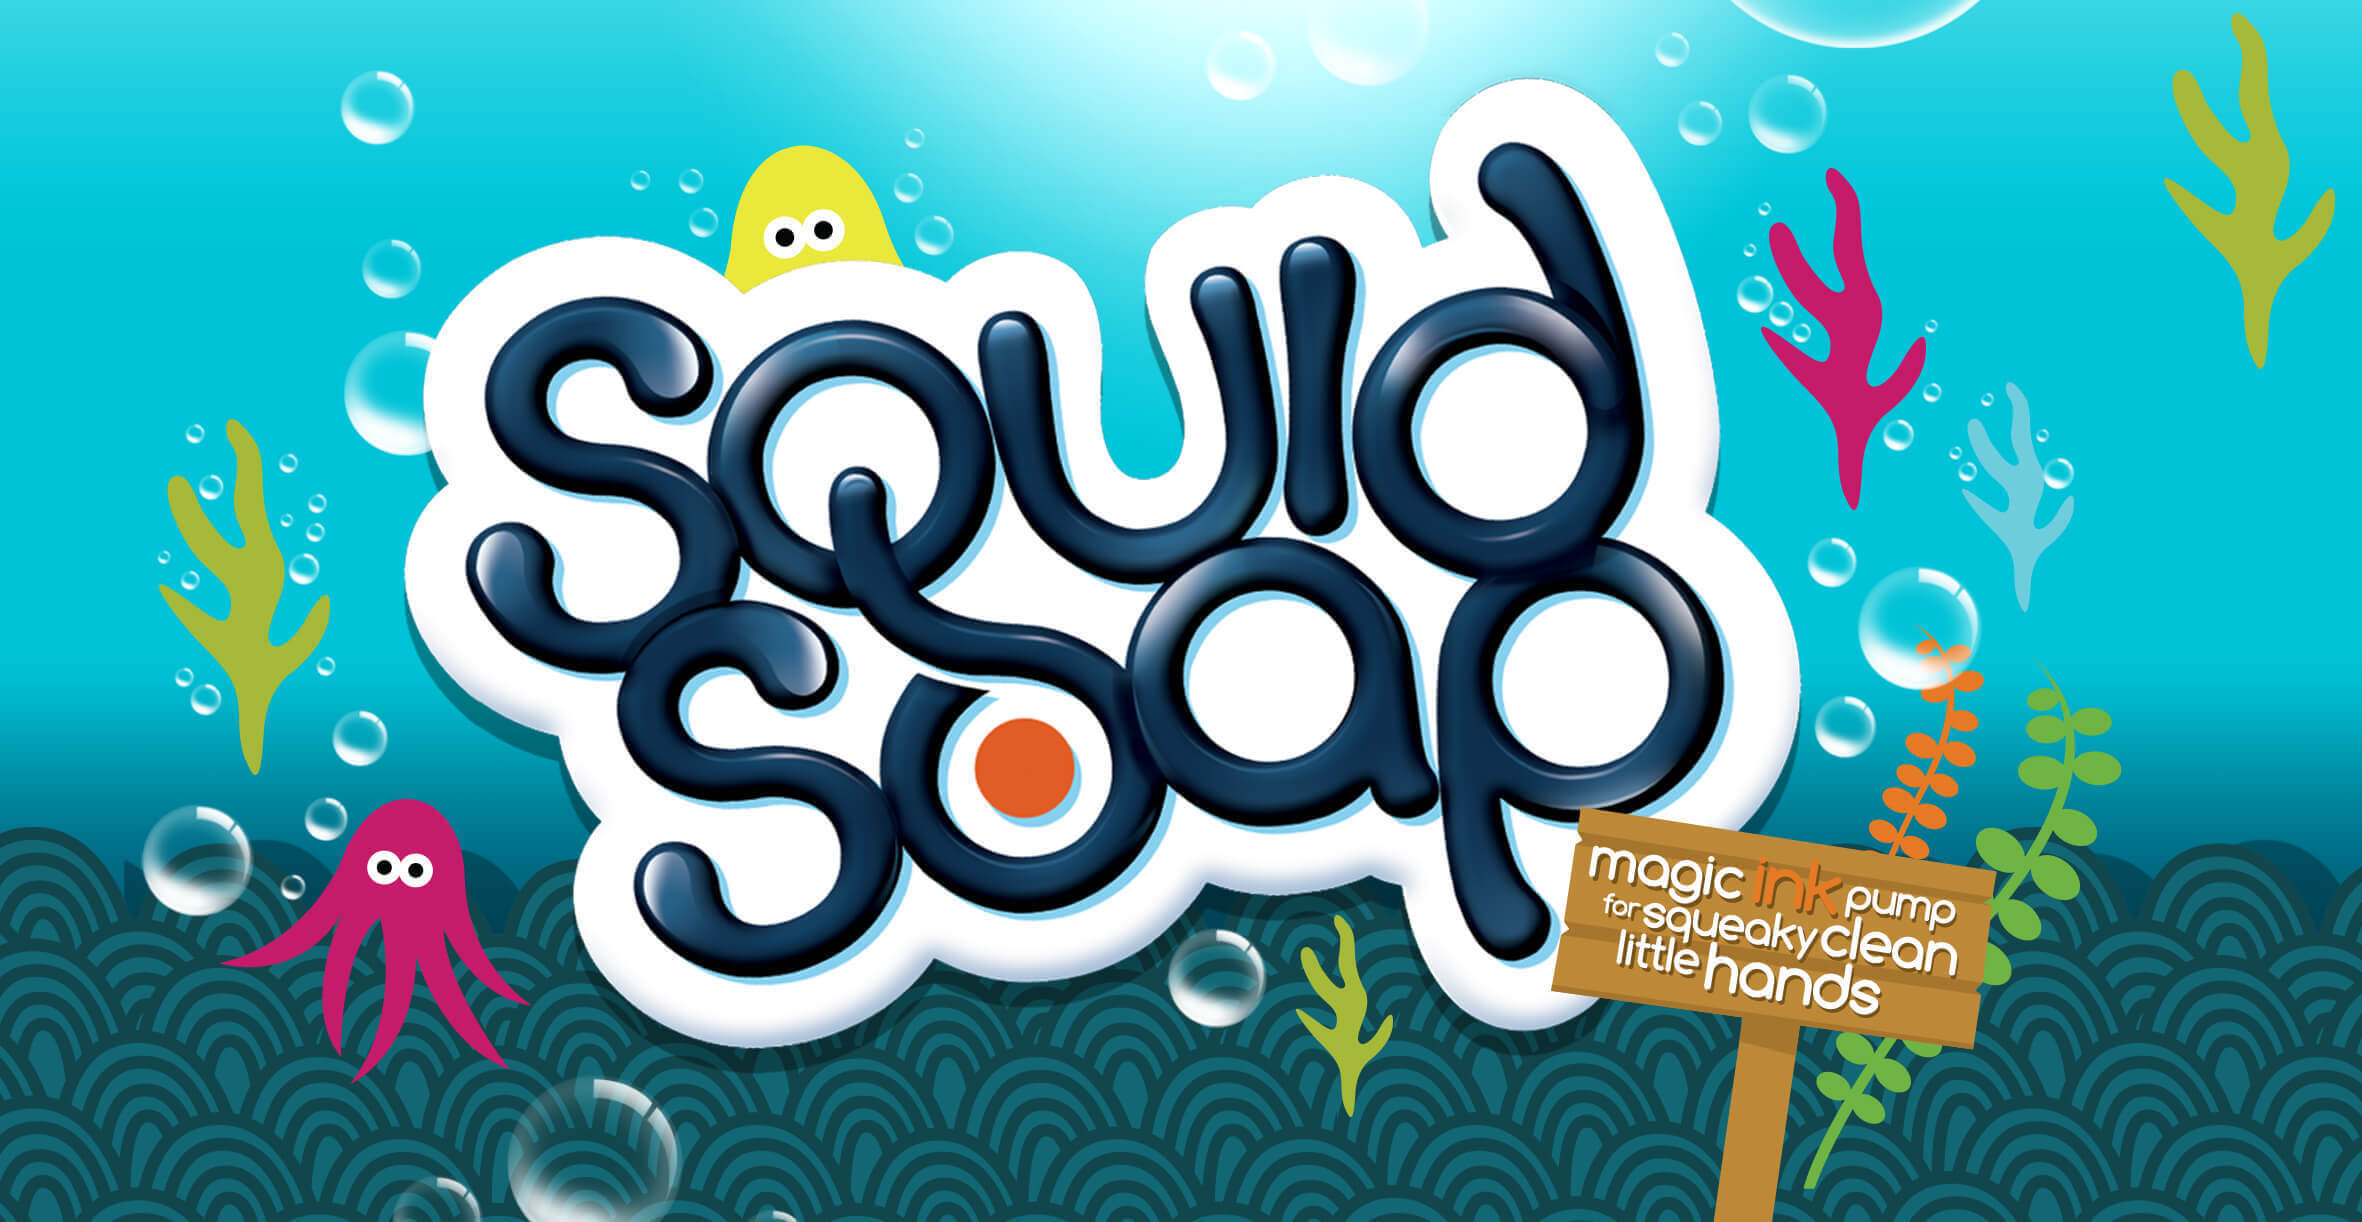 Toiletries packaging design and branding for children's bath product Squid Soap by Design Happy London - new brand logo identity for kids